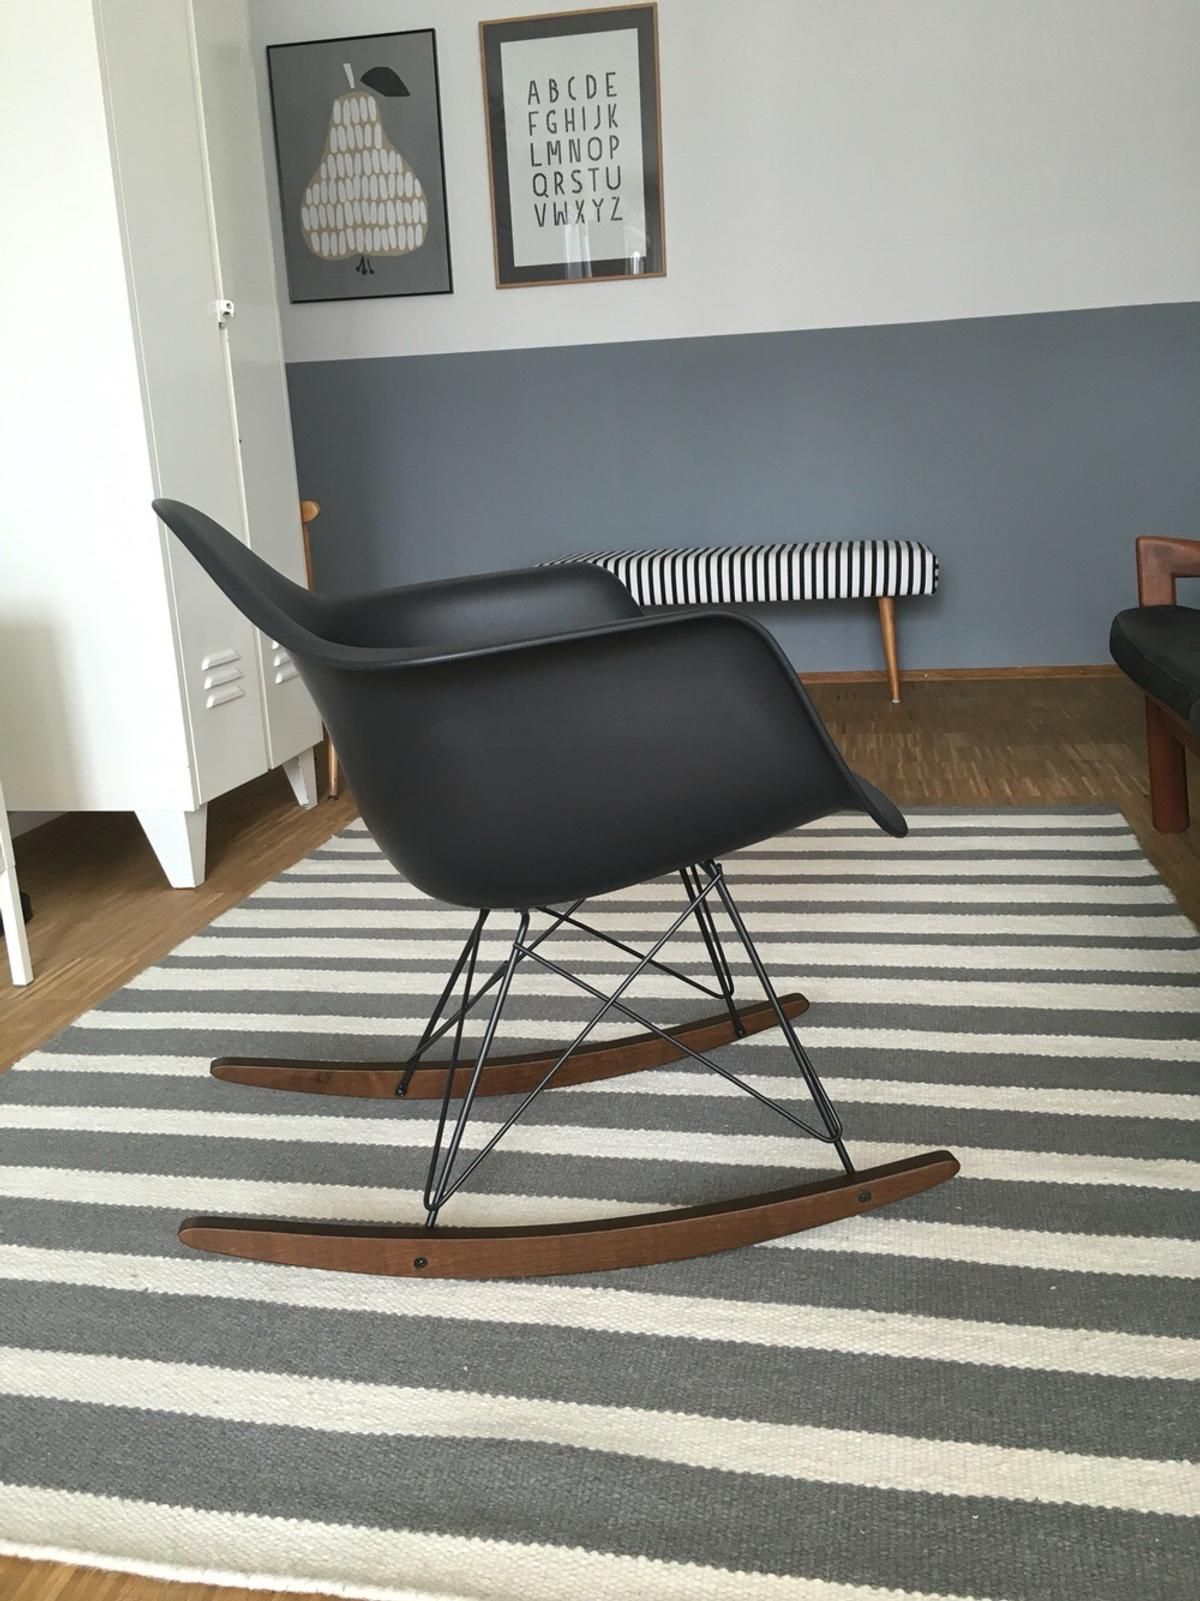 Schaukelstuhl Vitra Vitra Eames Schaukelstuhl Rocking Chair In 80634 München For